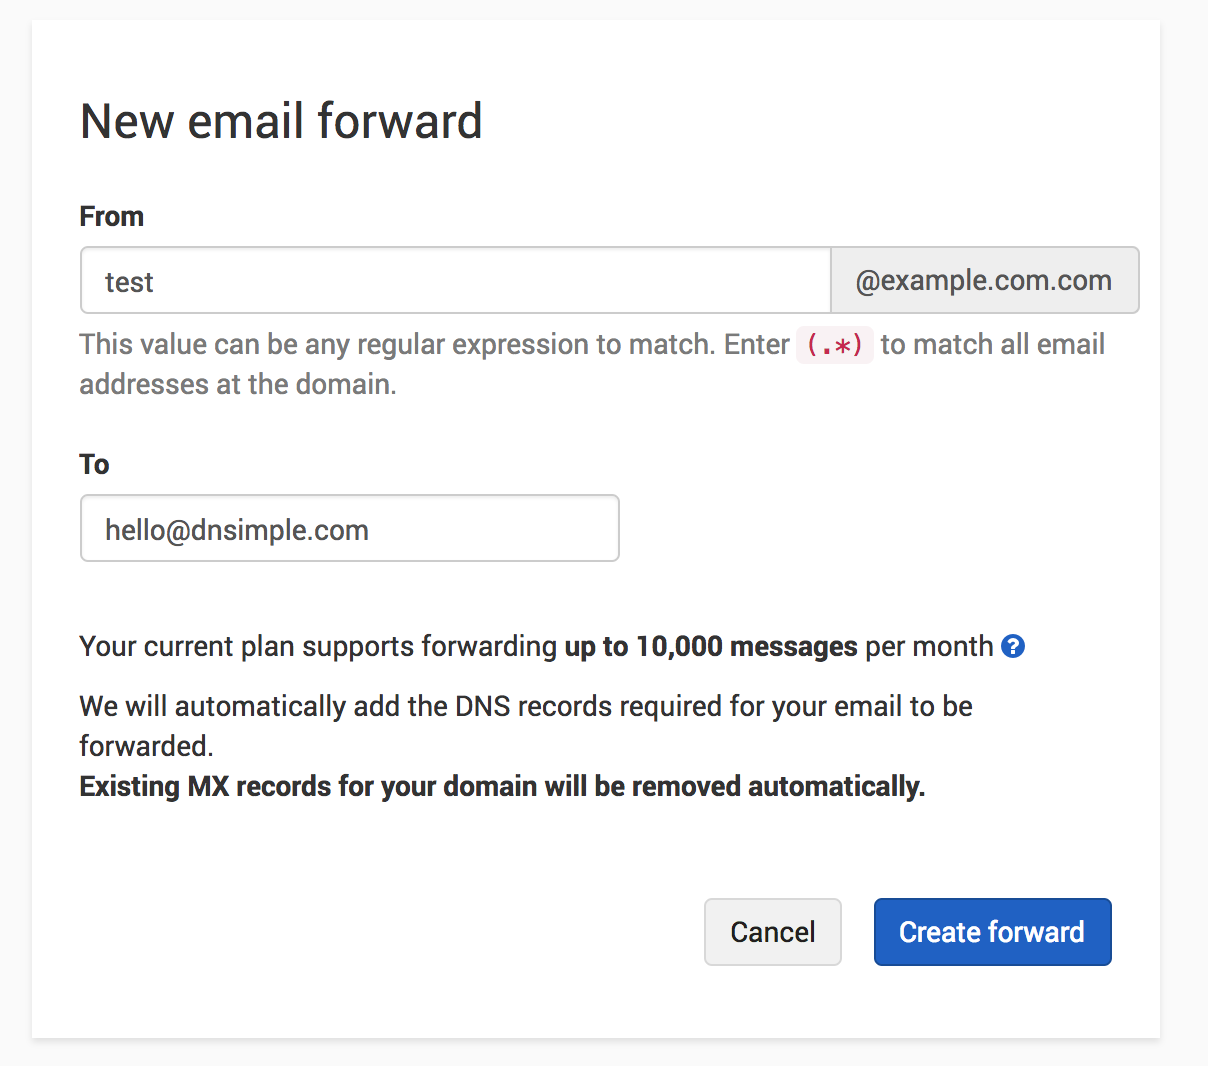 how to change the name of a foward e-mail